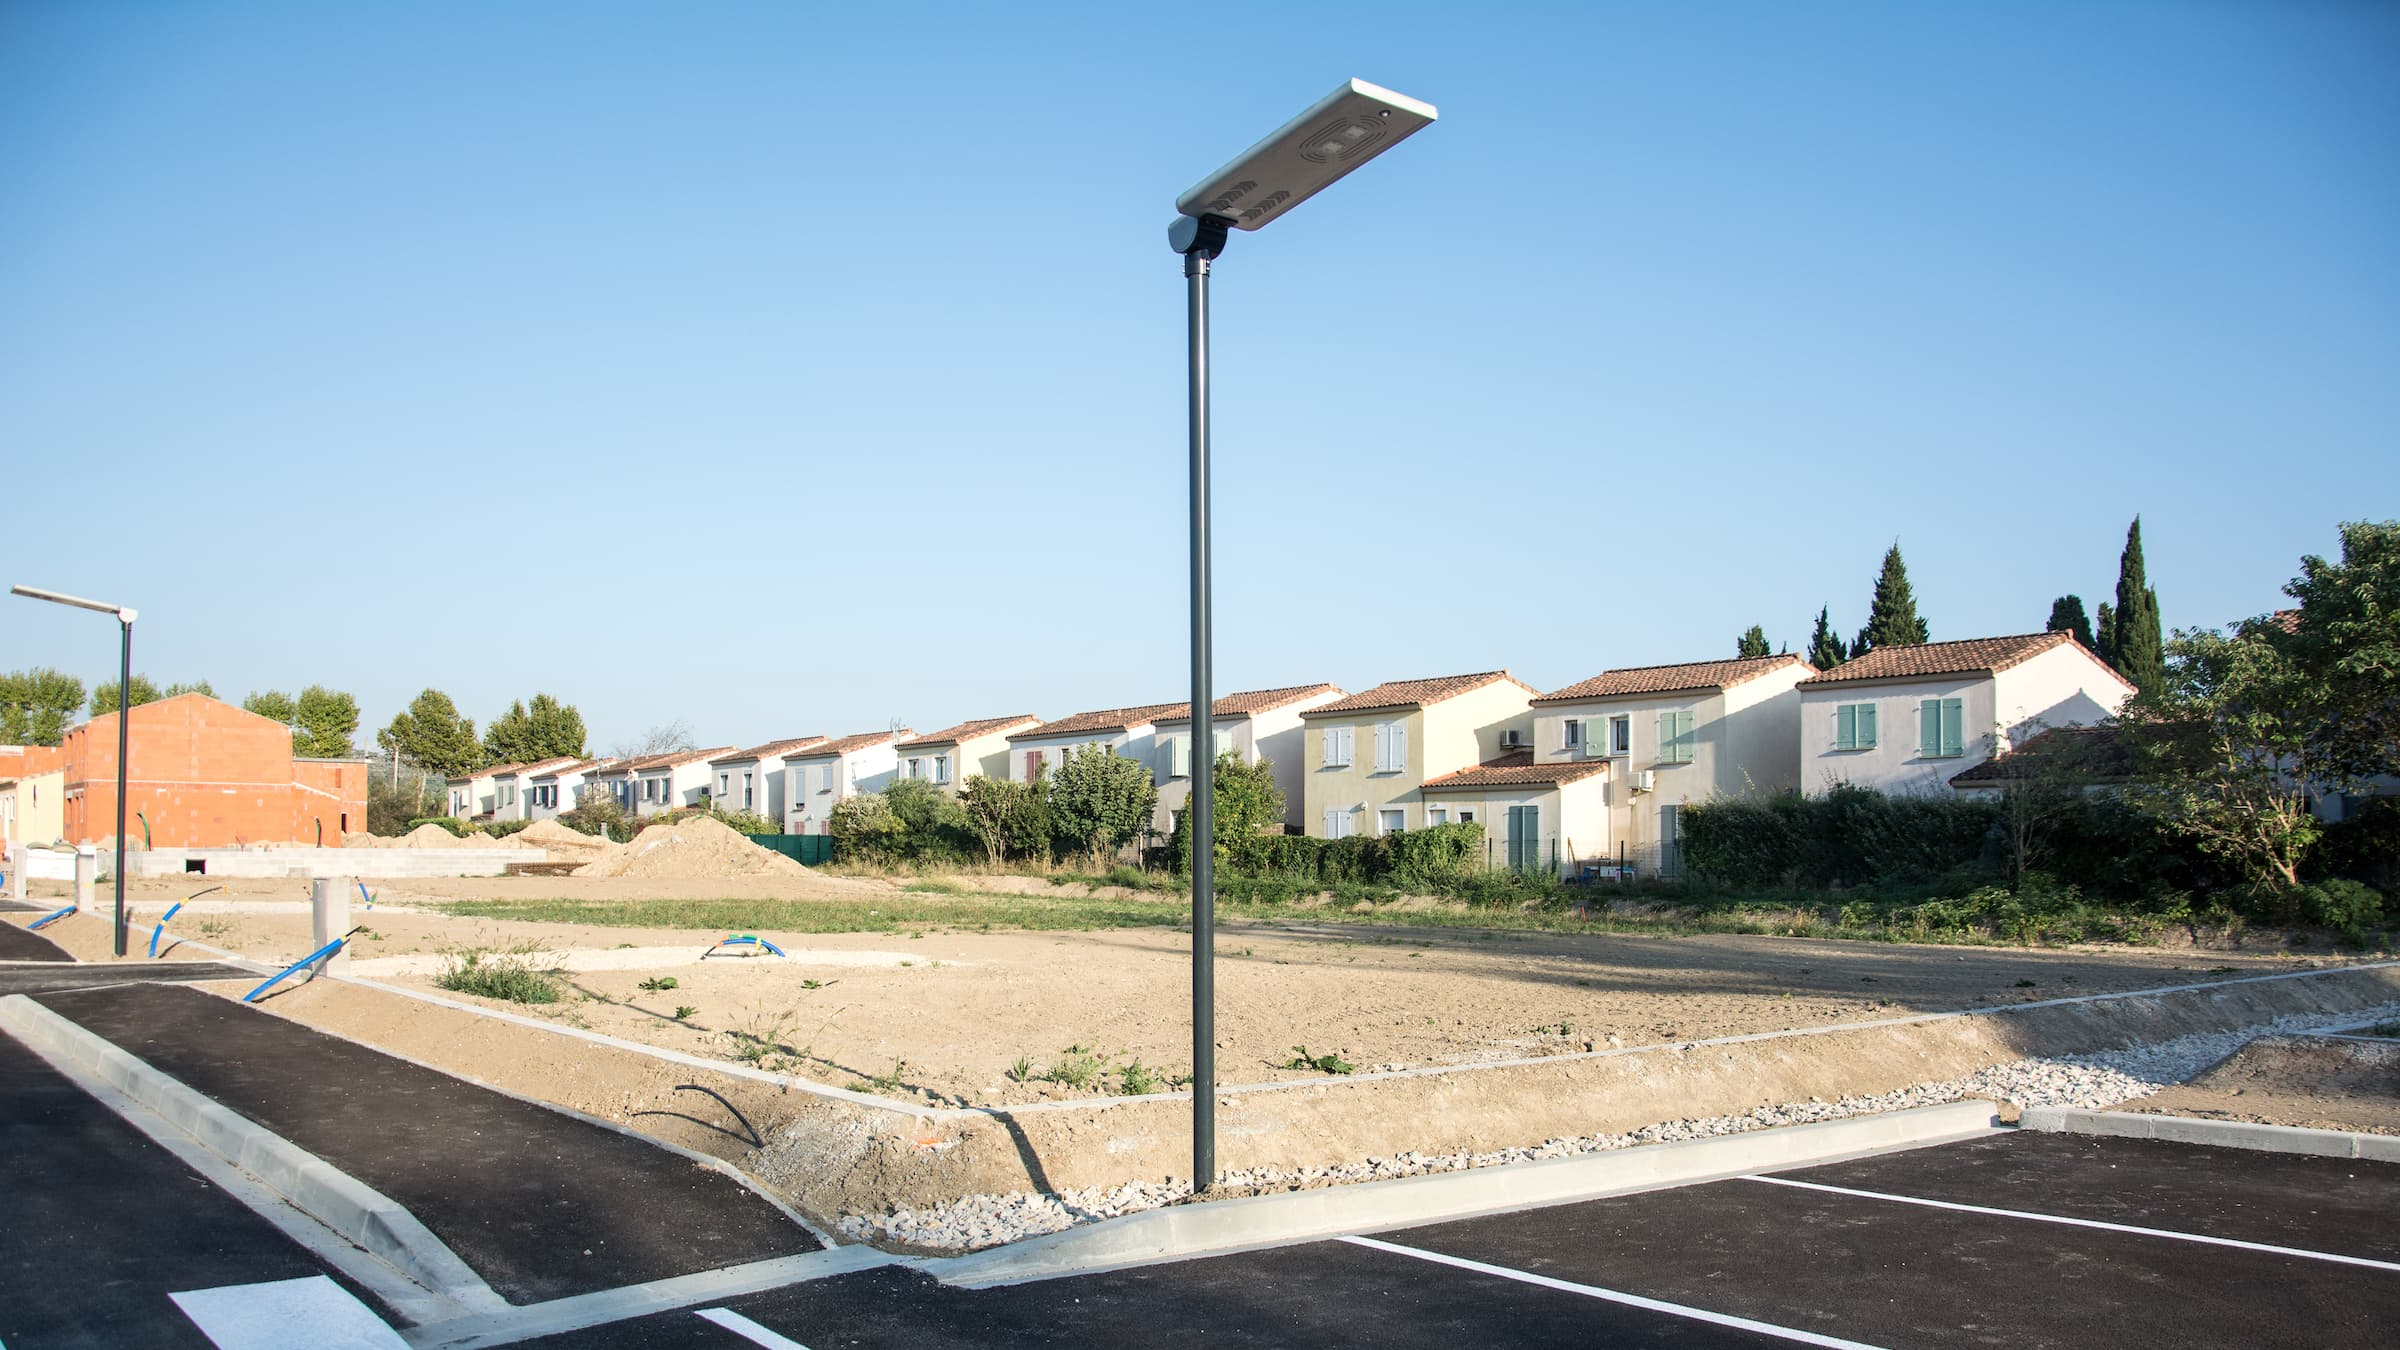 All-in-one solar street light vs. split type tells the advantages and disadvantages of these two solar street lights, help you to make a right decision